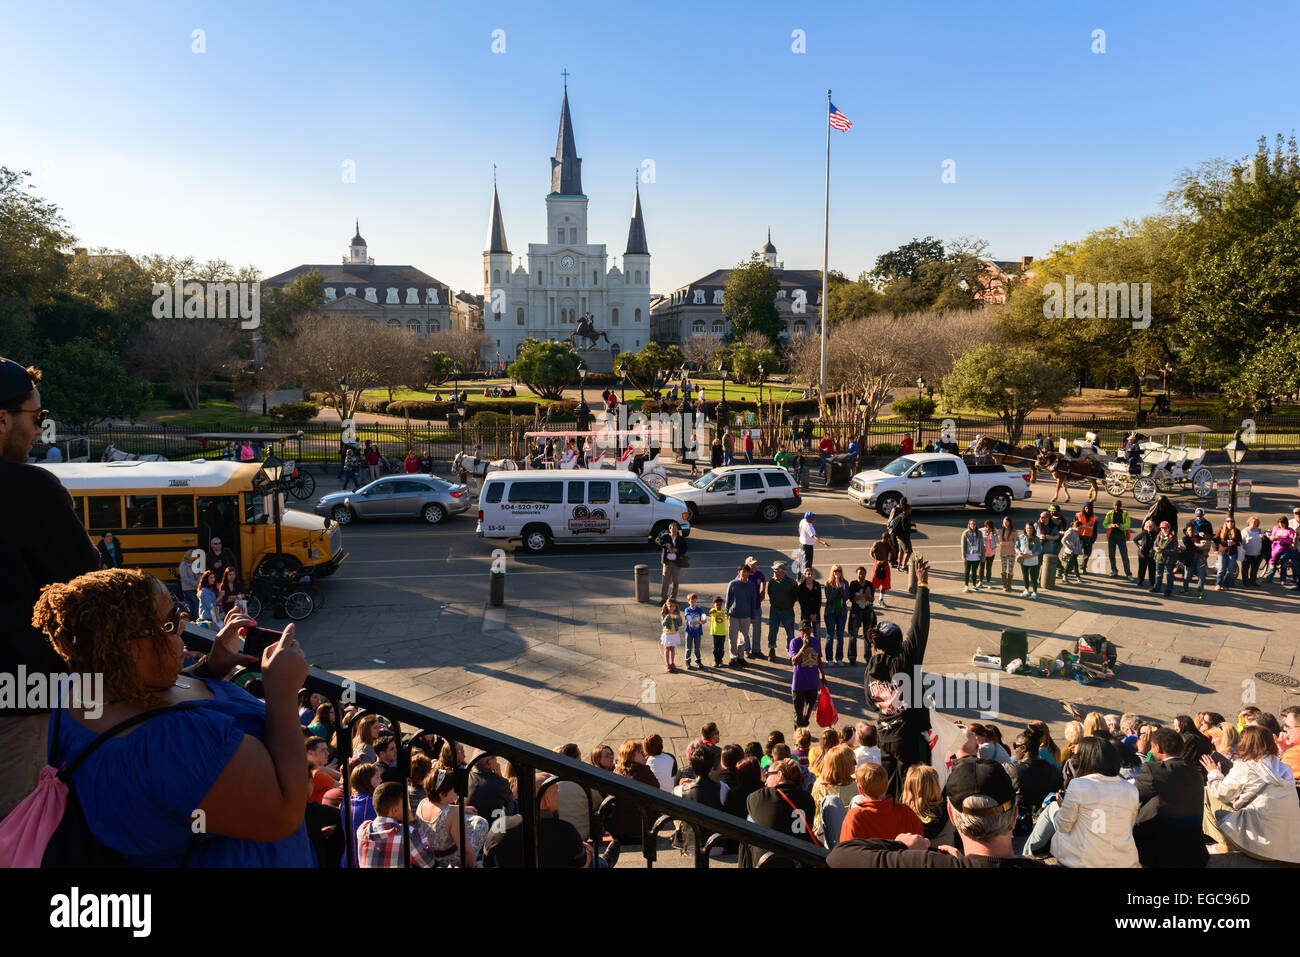 Street performance gathers a crowd of tourists in the French Quarter of New Orleans. Stock Photo